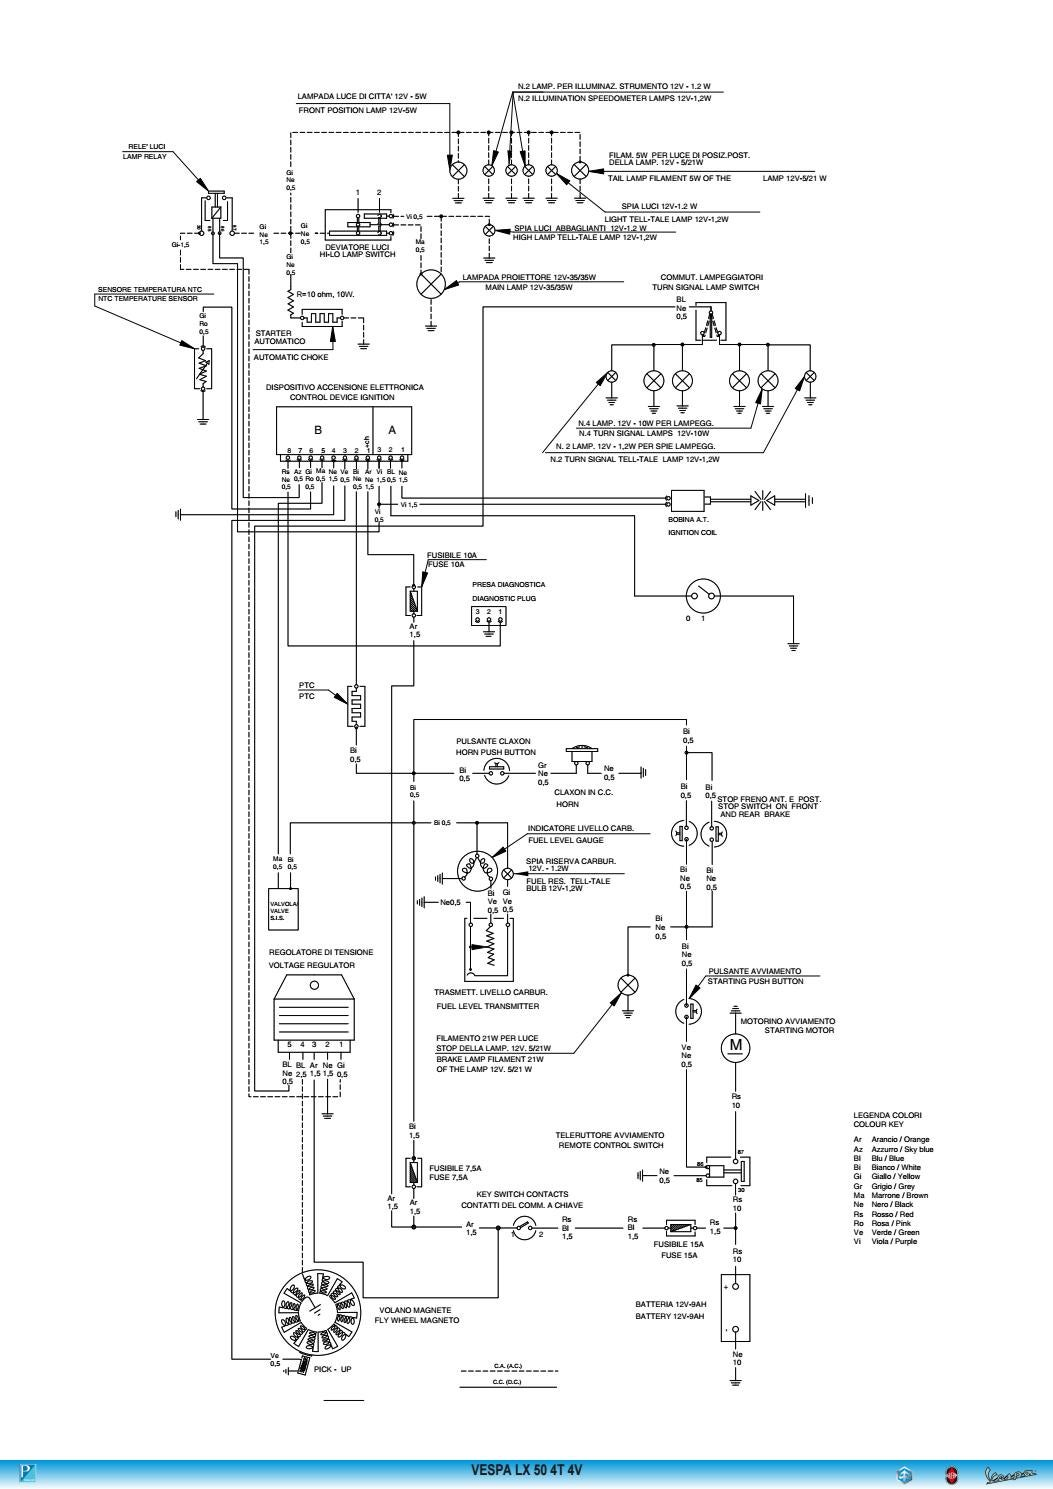 Diagram Vespa Lx 50 4 Valve Wiring Diagram By Duarte Grilo